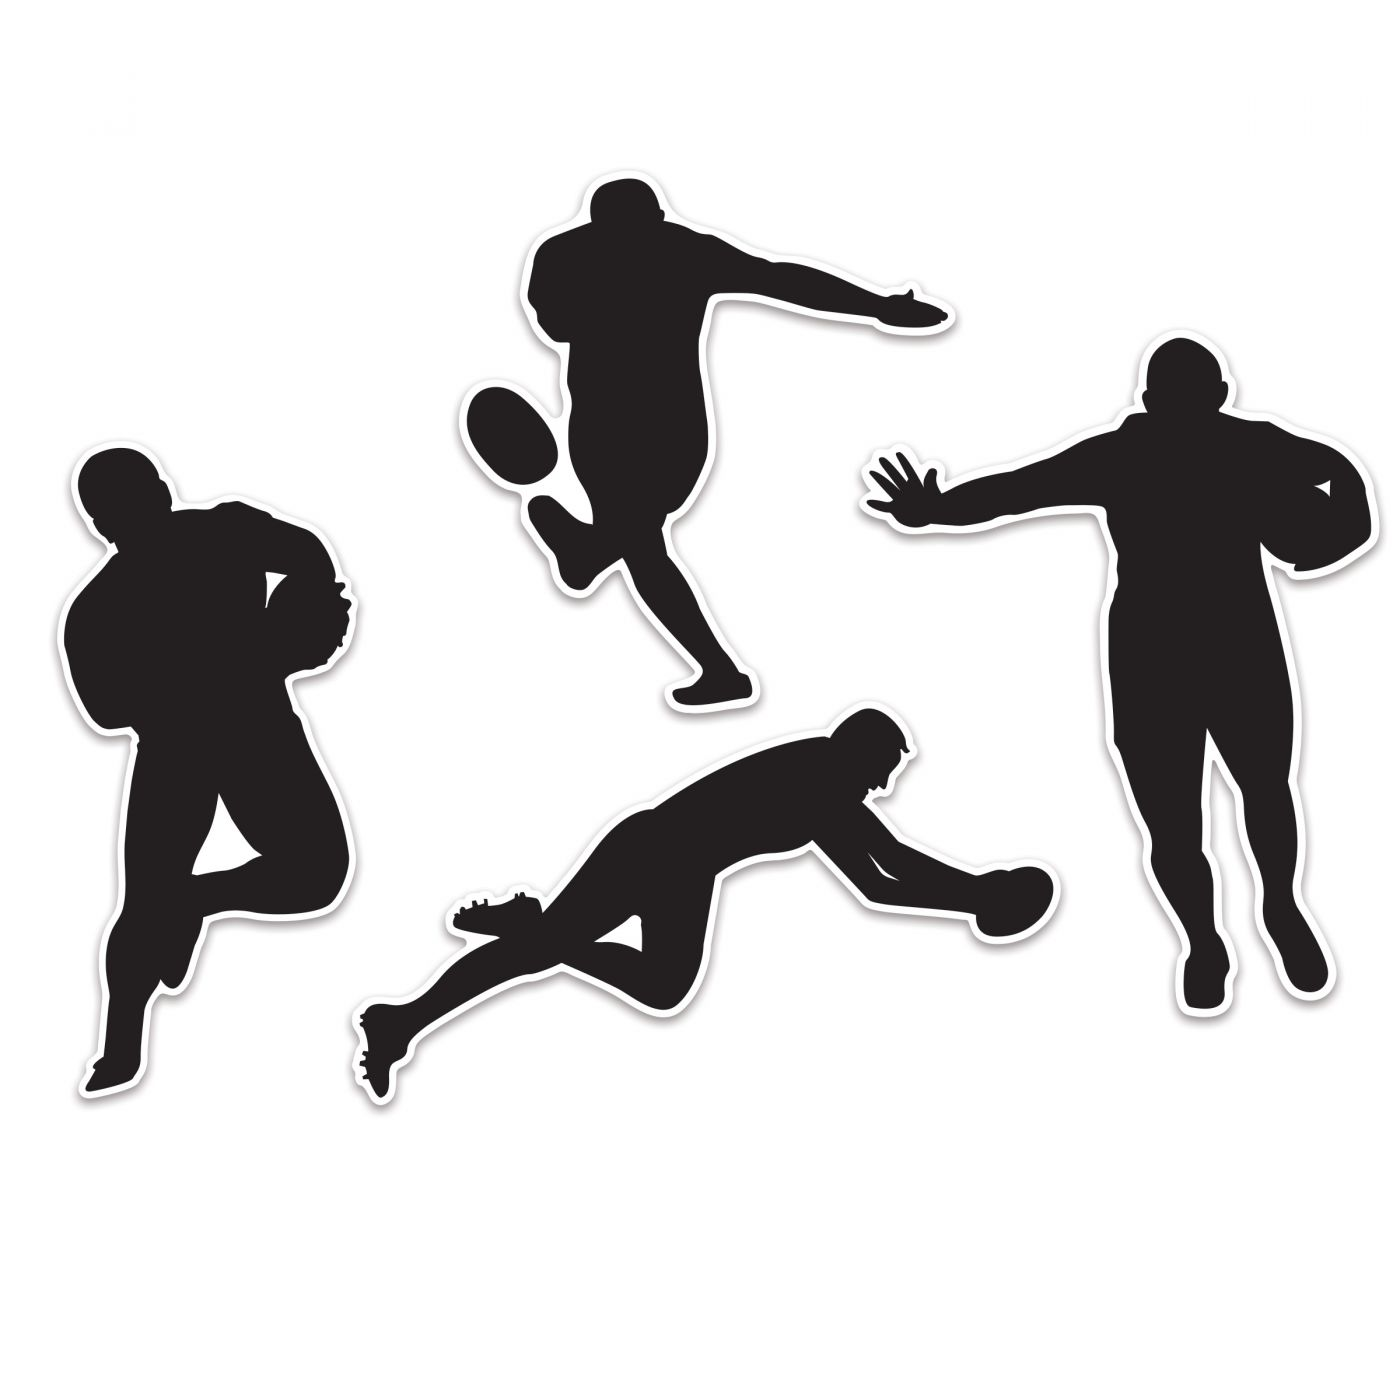 Rugby Player Silhouettes image